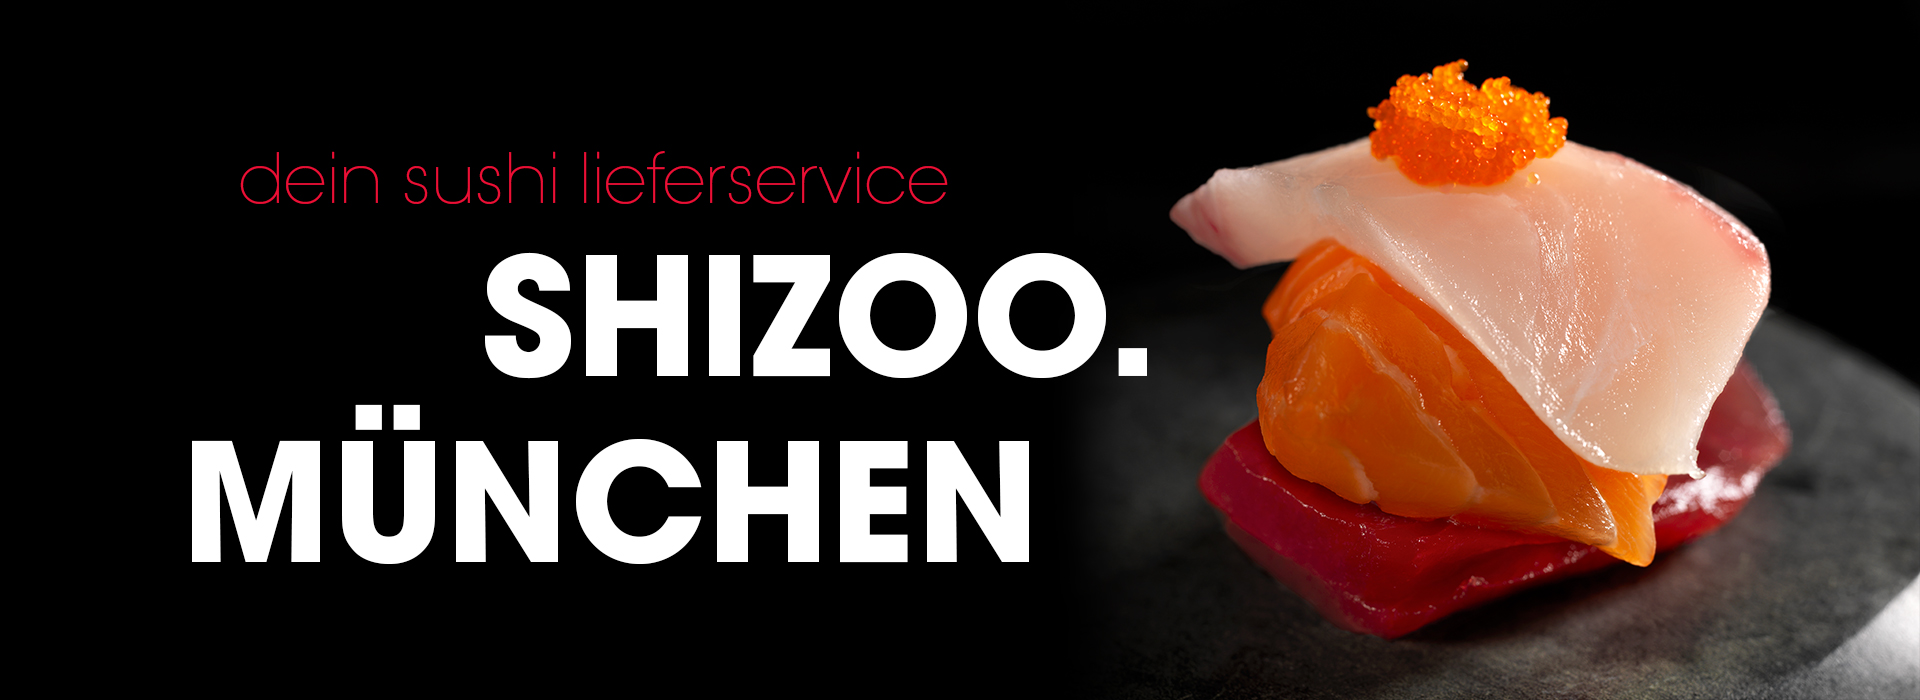 shizoo. Sushi Lieferservice München